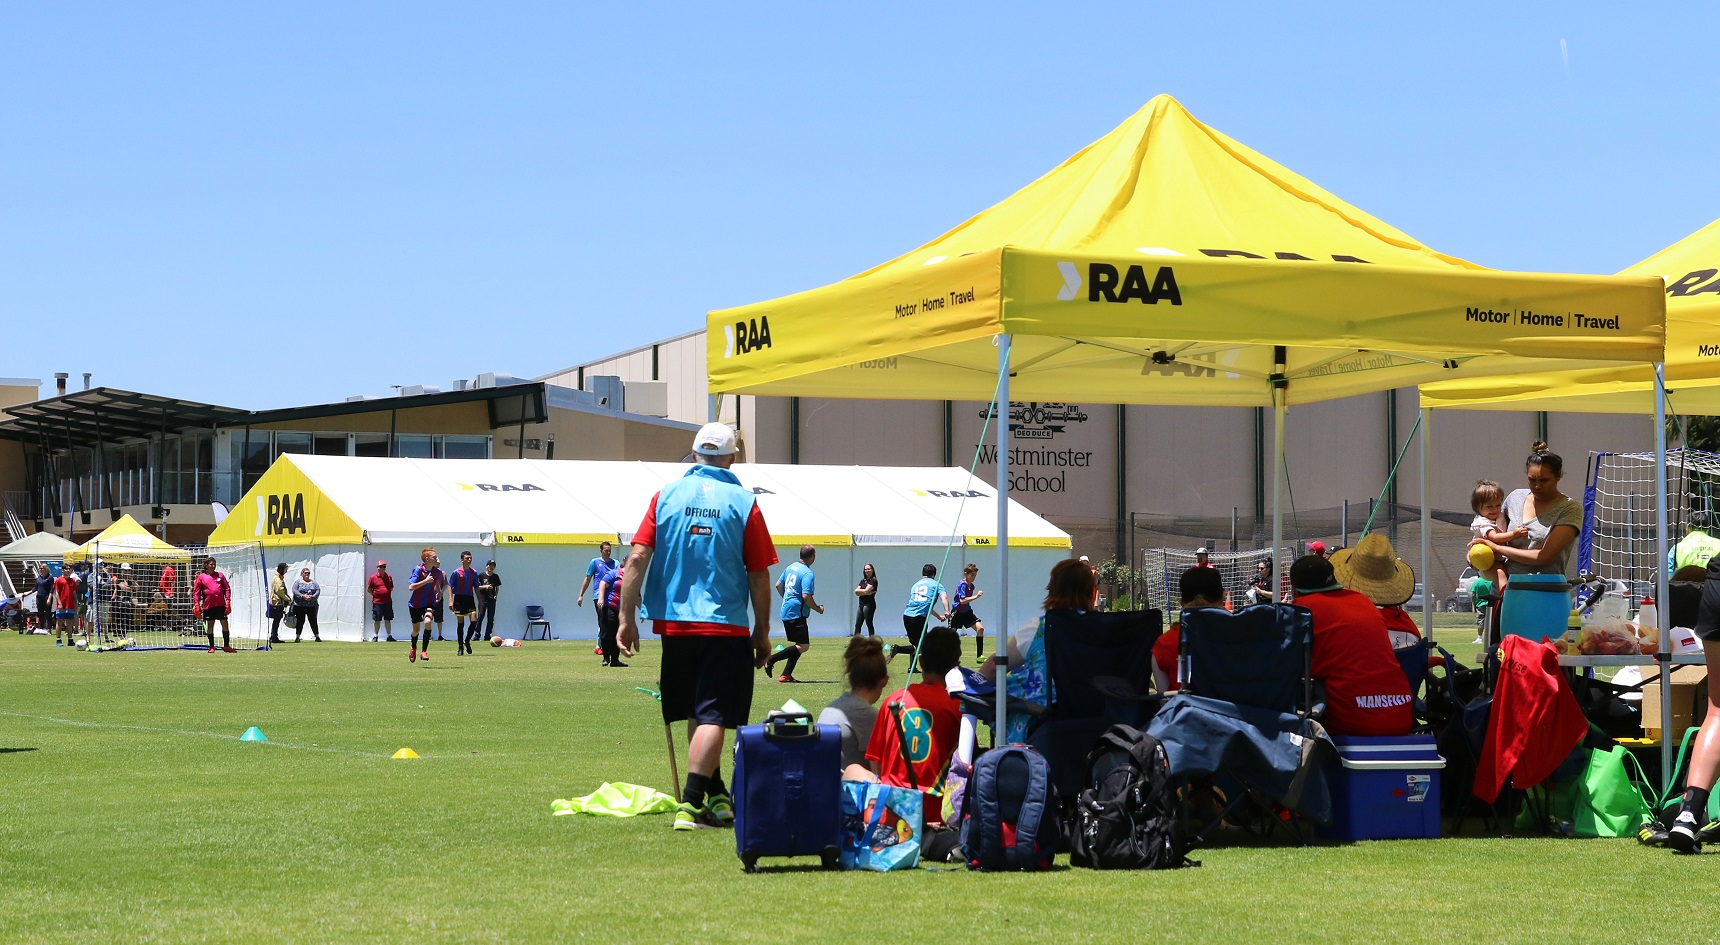 RAA provided marquees and free giveaways.